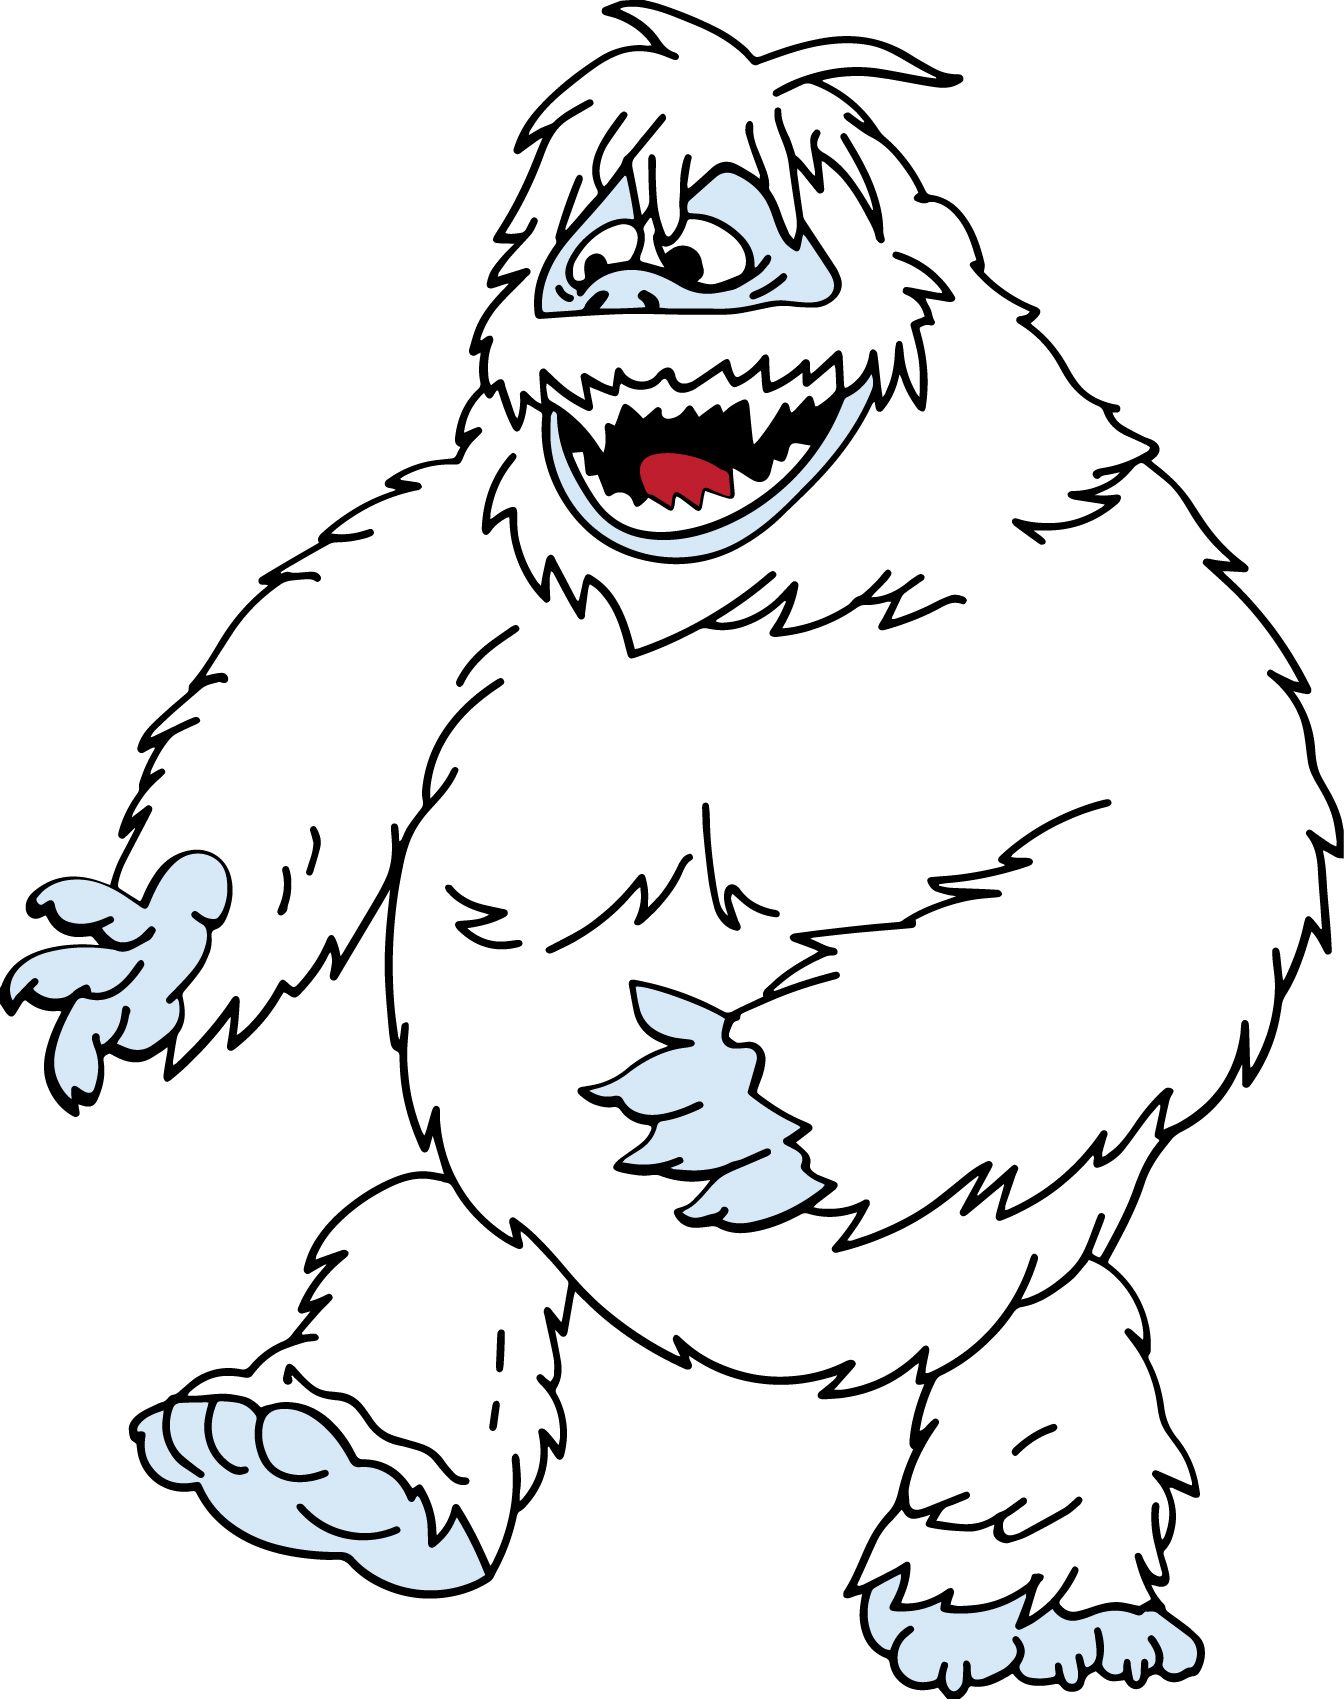 abominable snowman bumbles coloring pages - photo#12